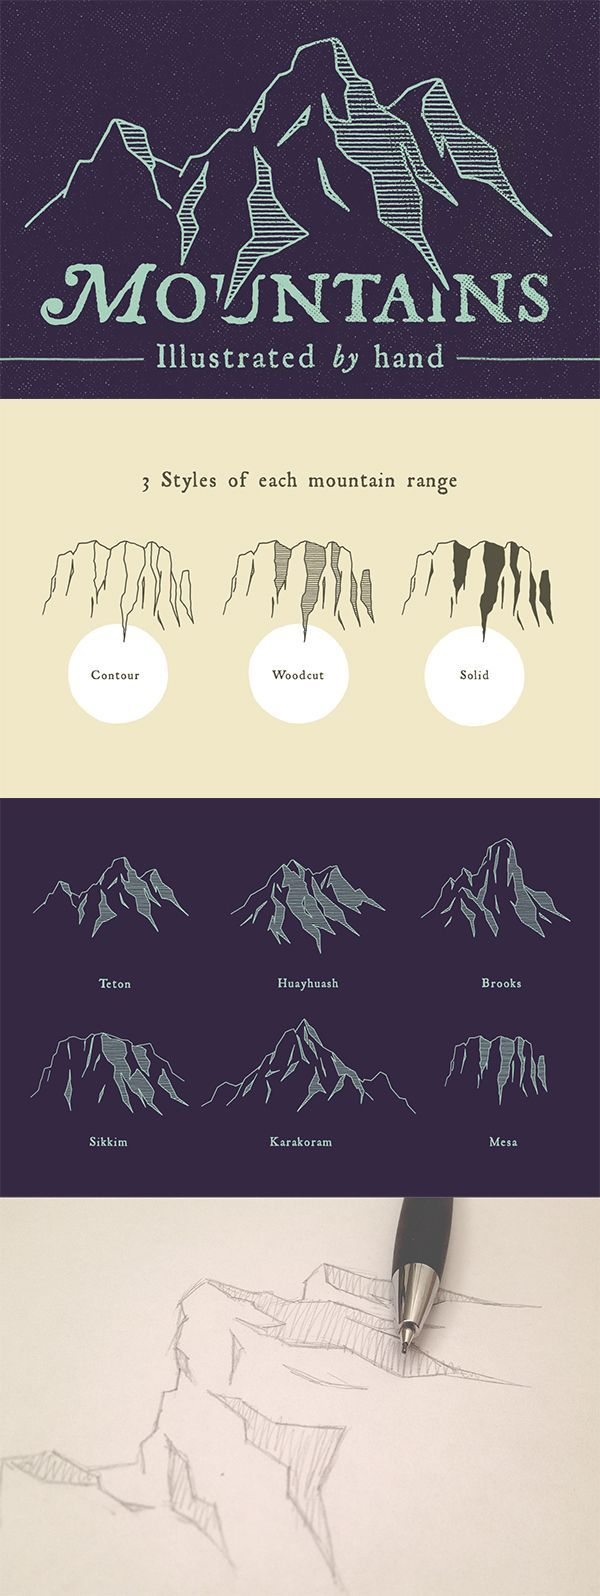 Design poster urging mountaineers preserve pristine glory mountainsides - The Mountains Are Calling